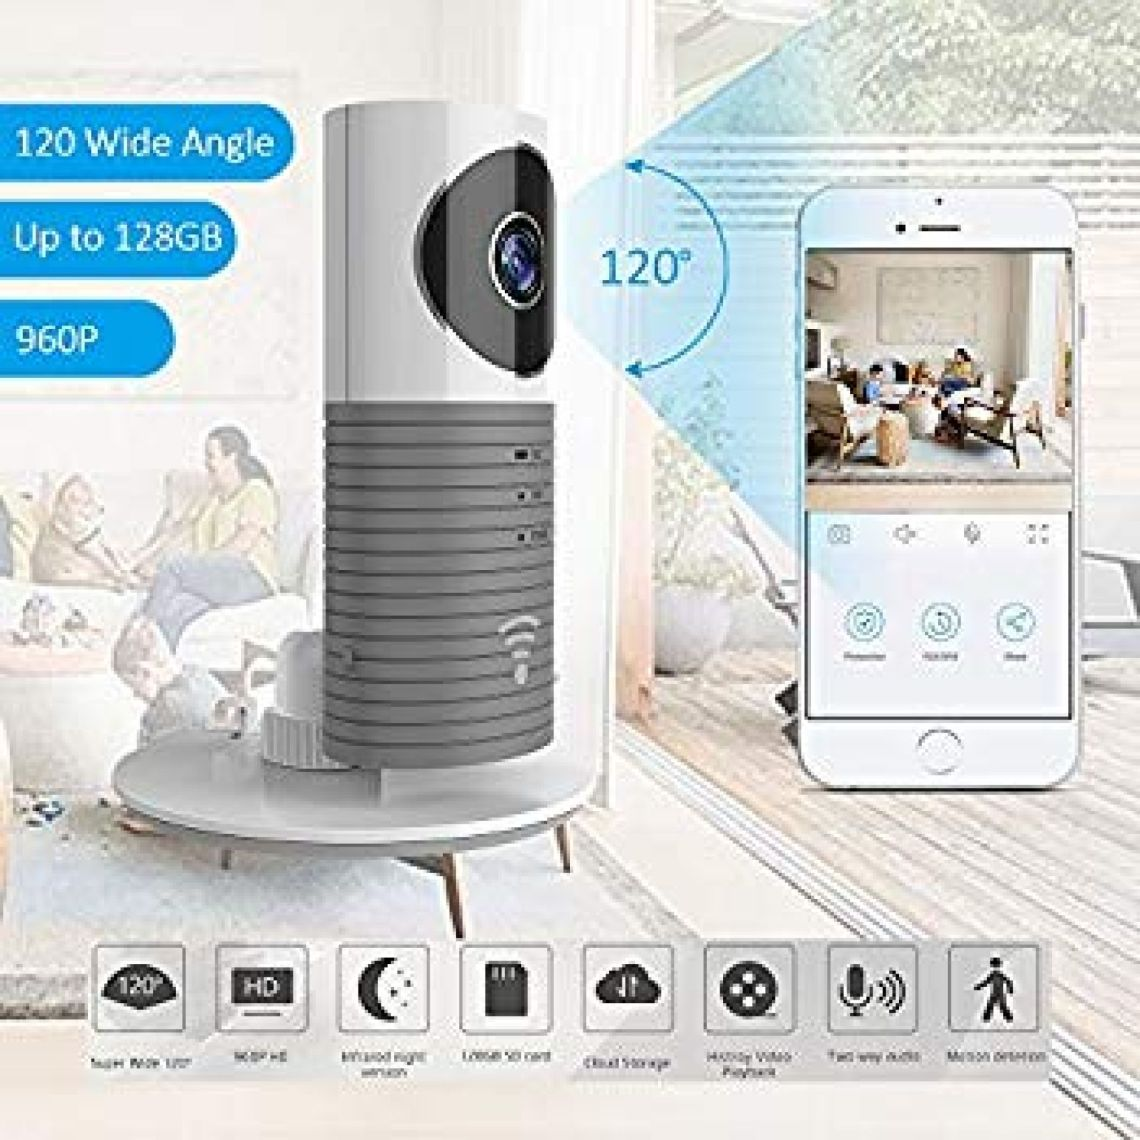 Amazon.com : TriVision Cloud Cam, HD 960P Indoor Wireless IP Security Camera with Motion Sensor, IR Night Vision, Wide Angle for Home/Office/Baby/Pet Monitor with Apple iOS, Android App : Camera & Photo